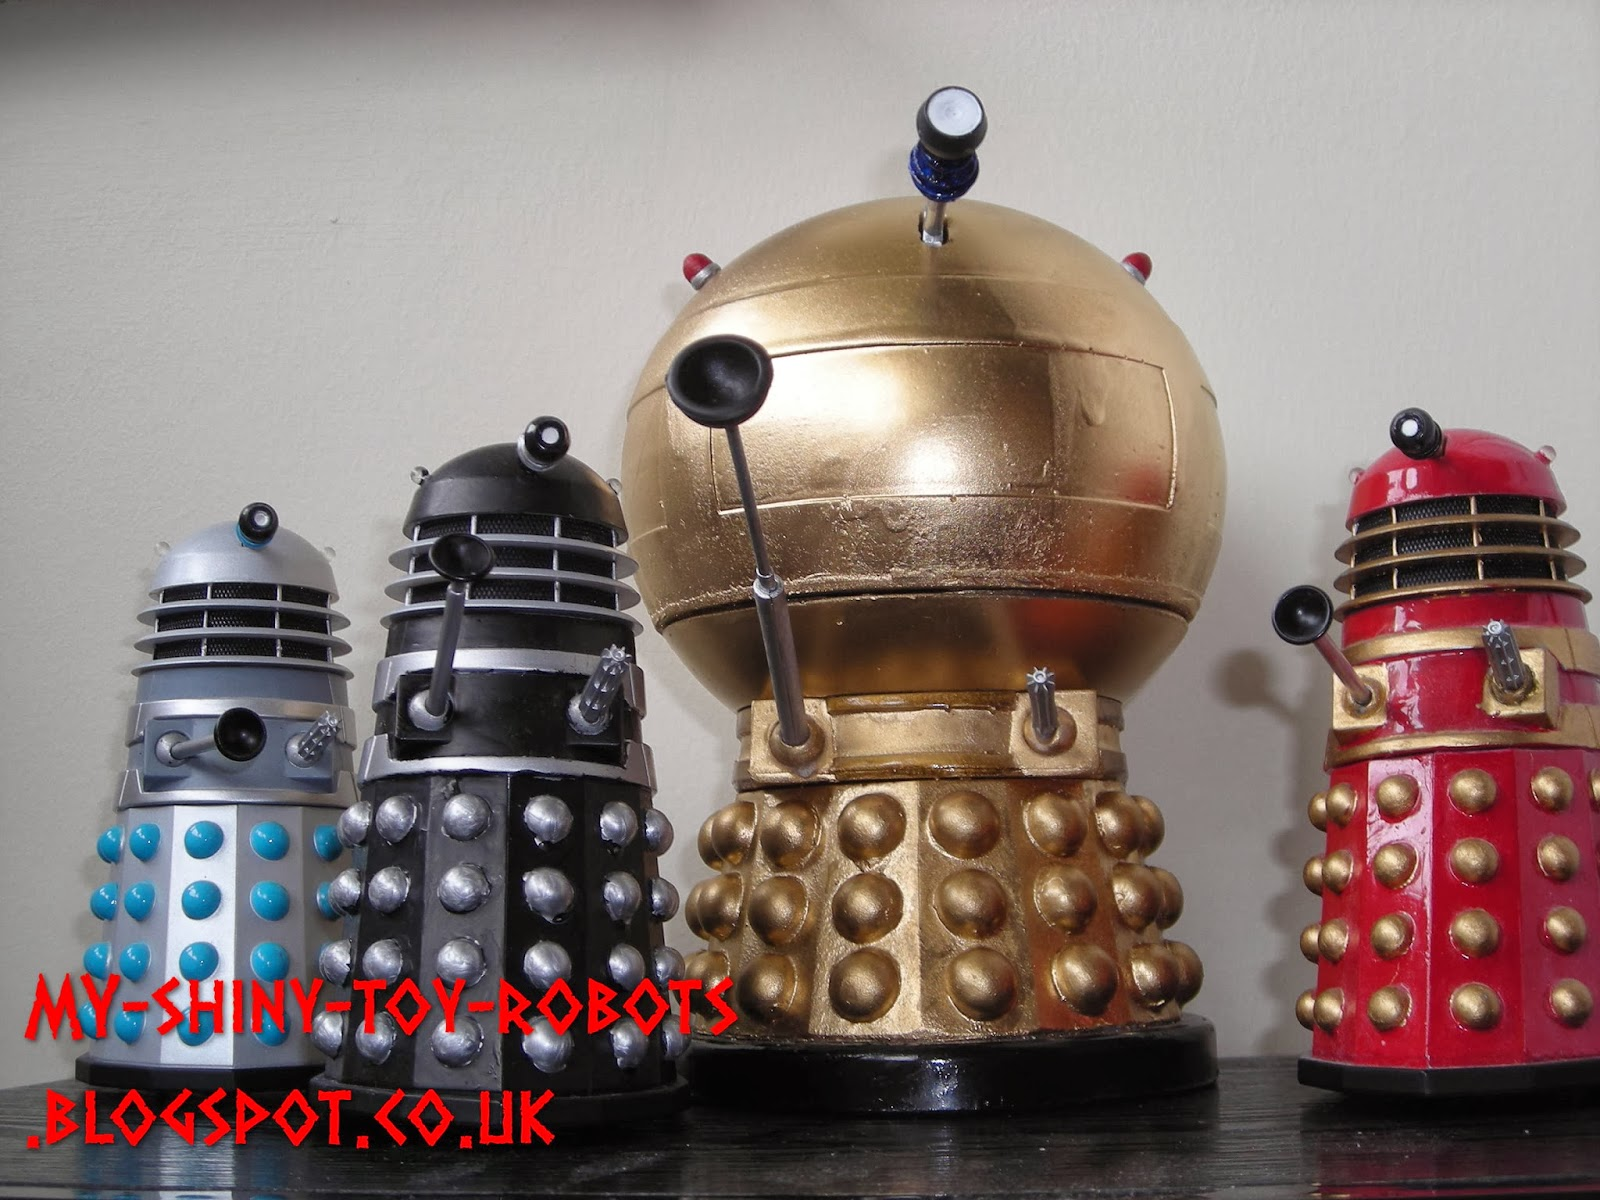 The comic Dalek army grows